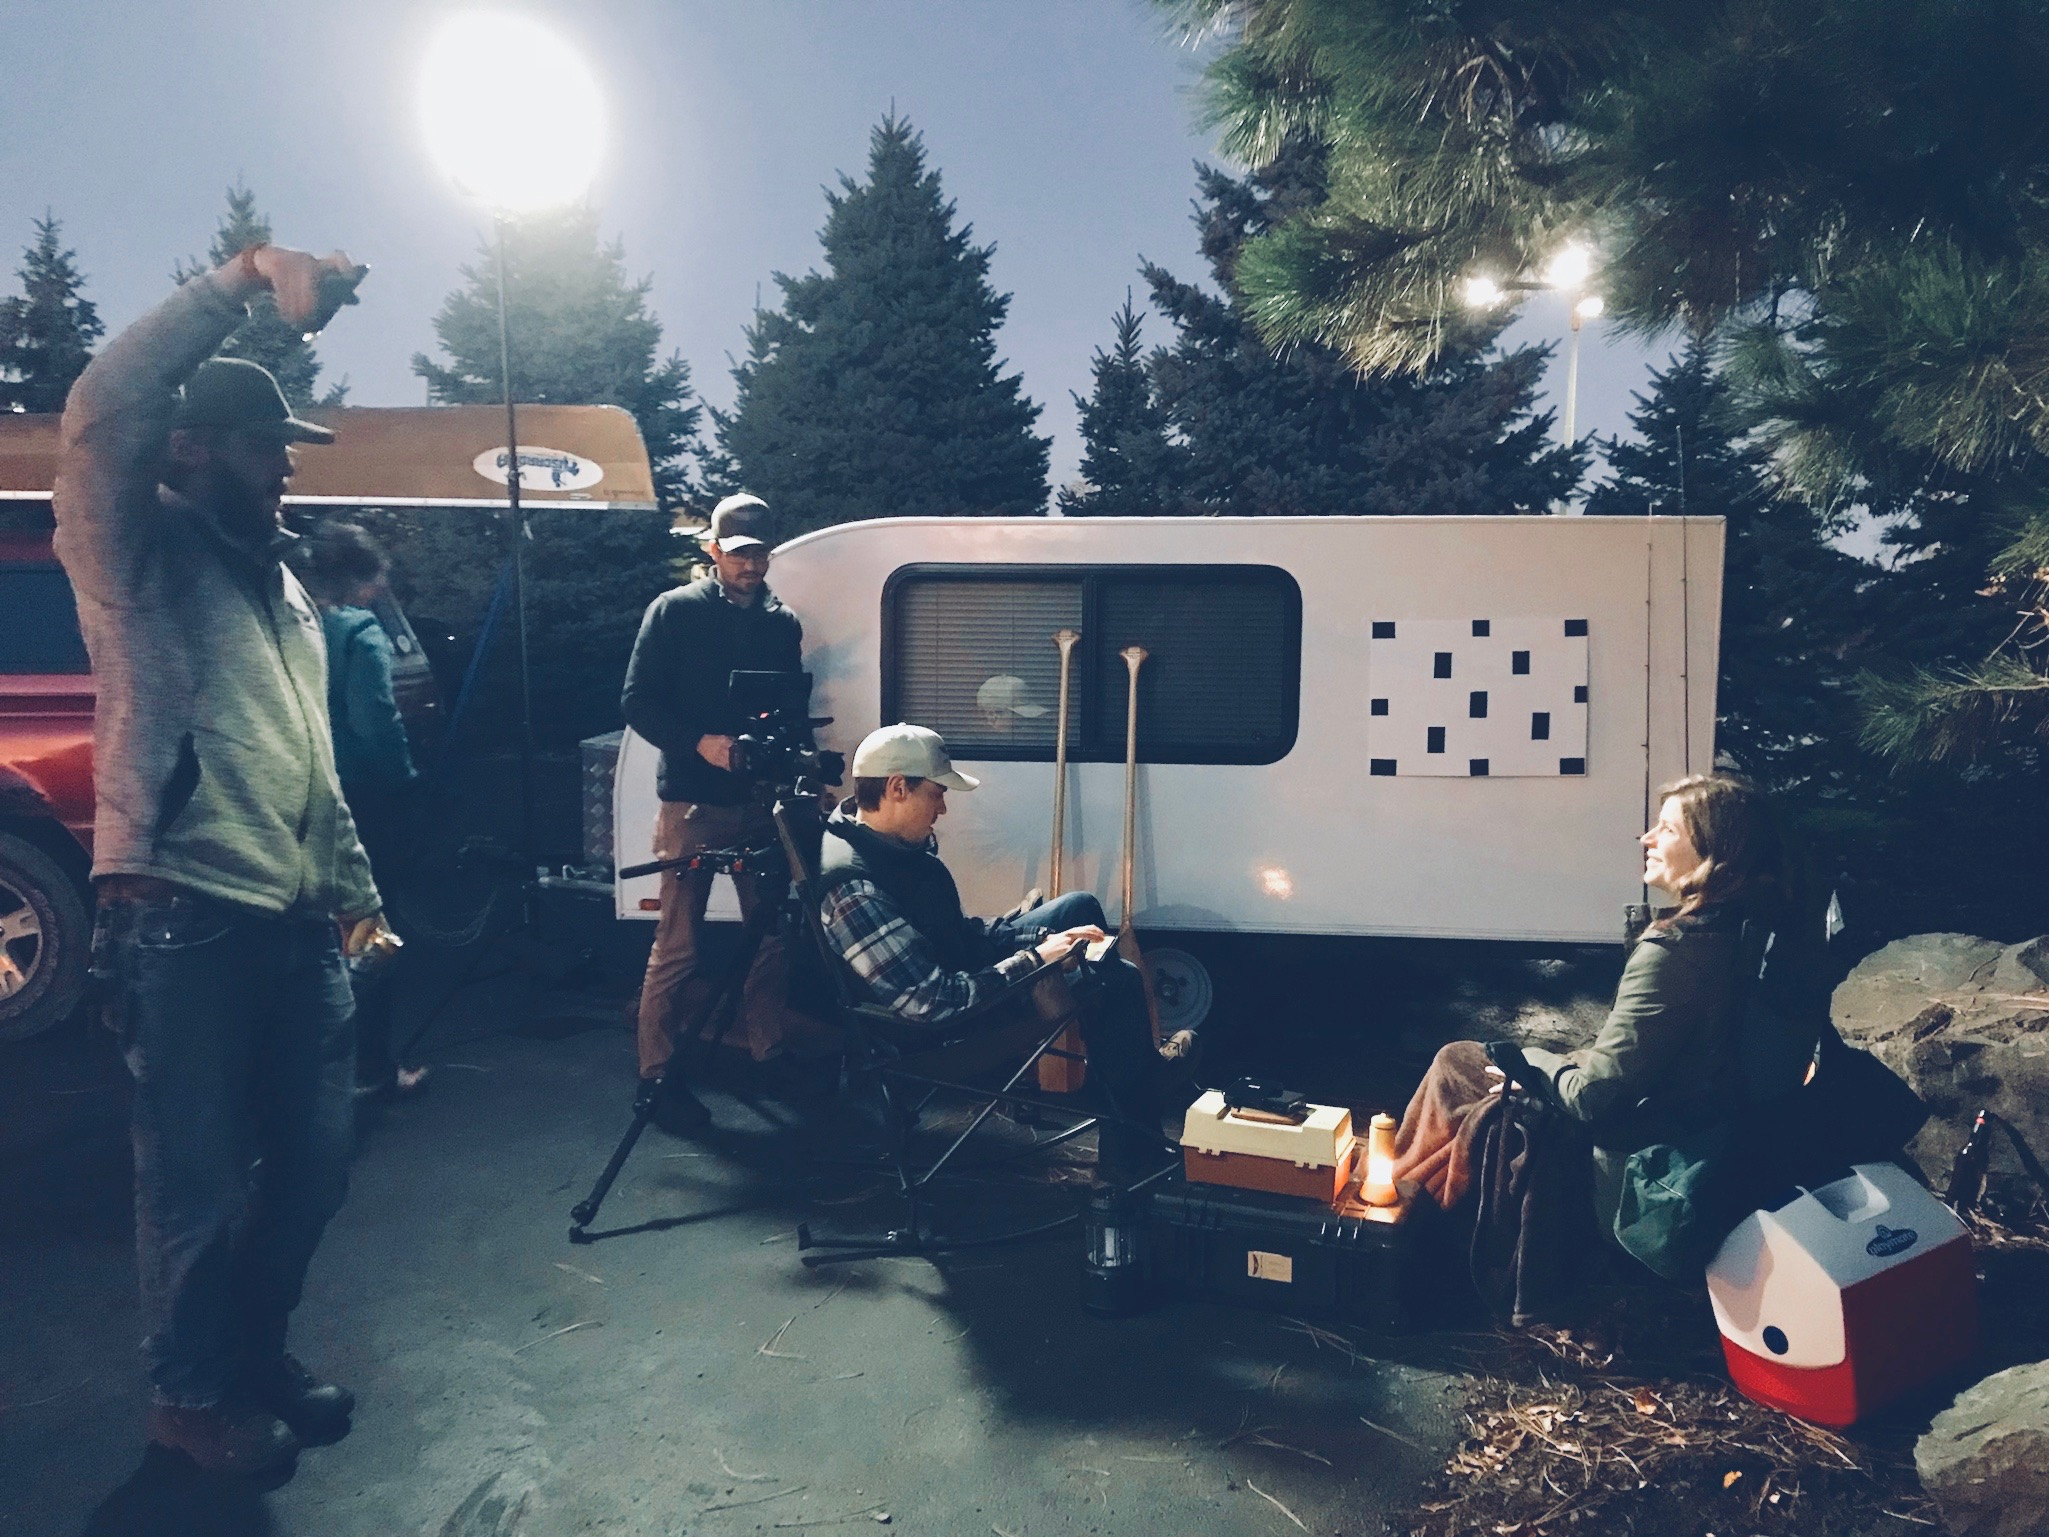 Behind the scenes look at our urban campsite. Light positioned to simulate the moon and our actors dutifully imagining a projection on the trailer.